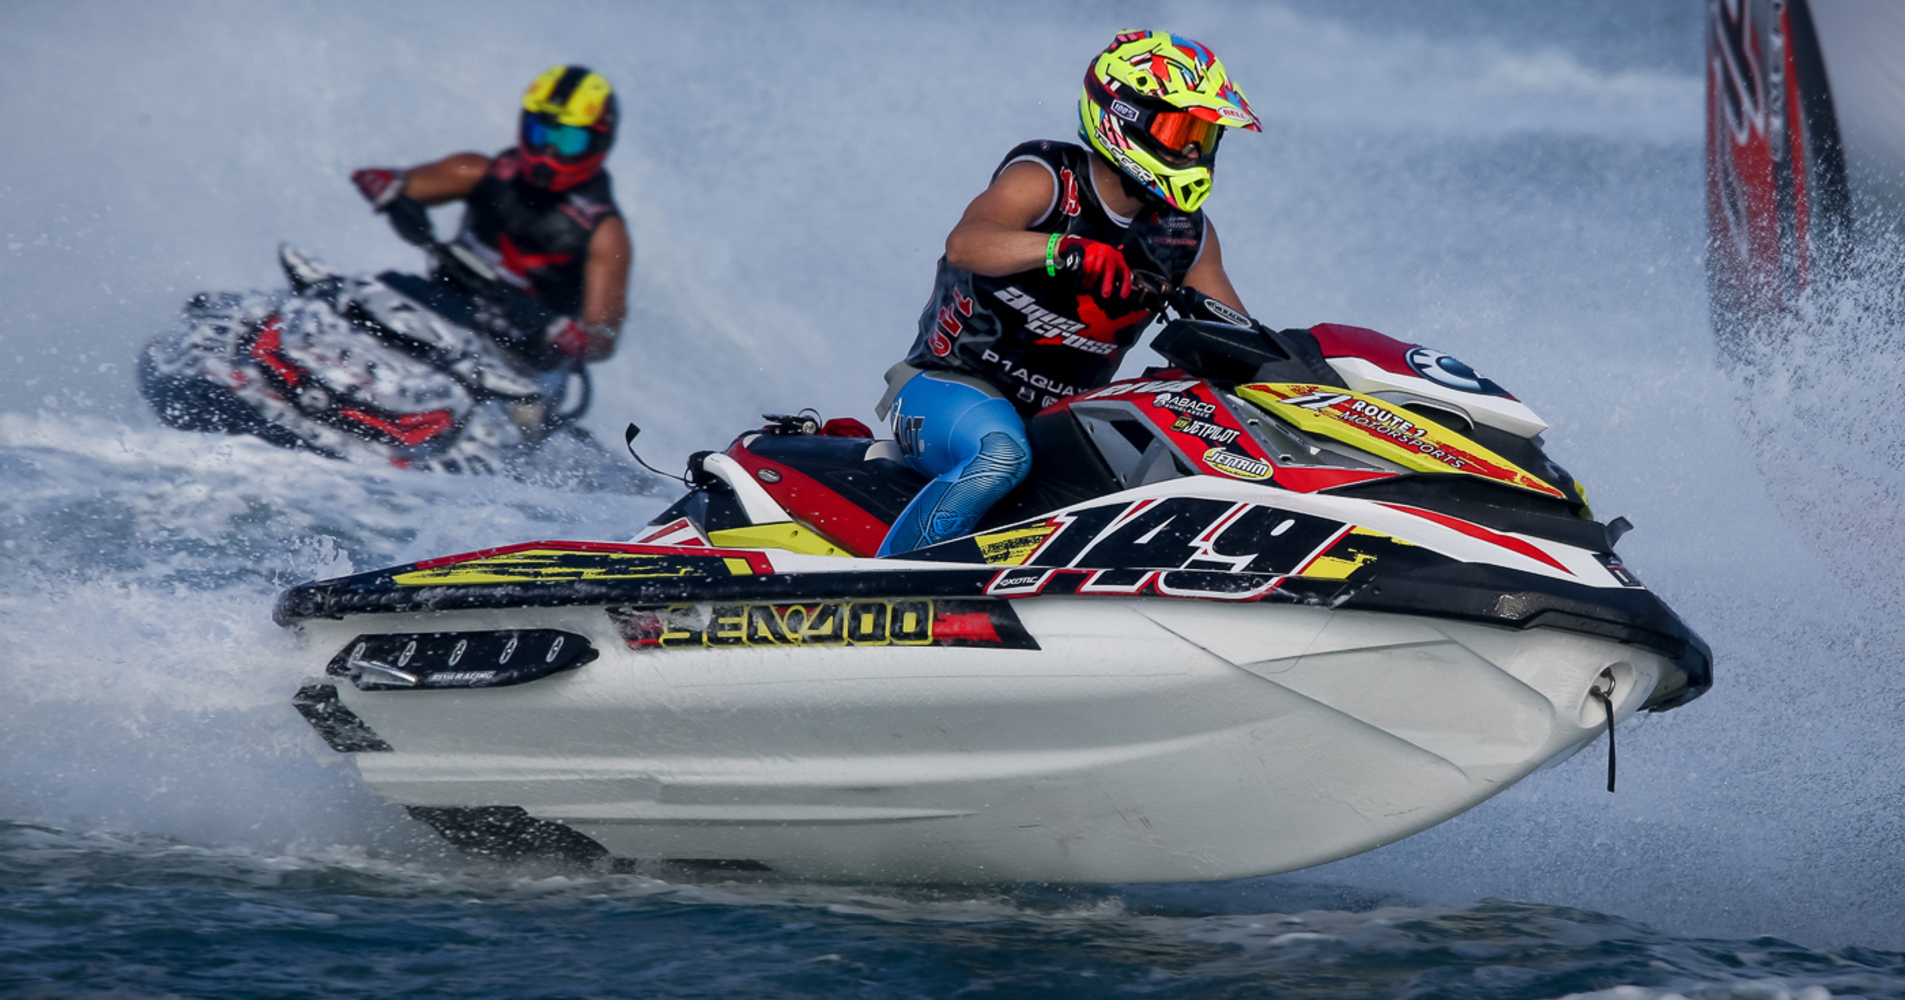 Yamaha FZR SHO qualifies for the AquaX 250 class